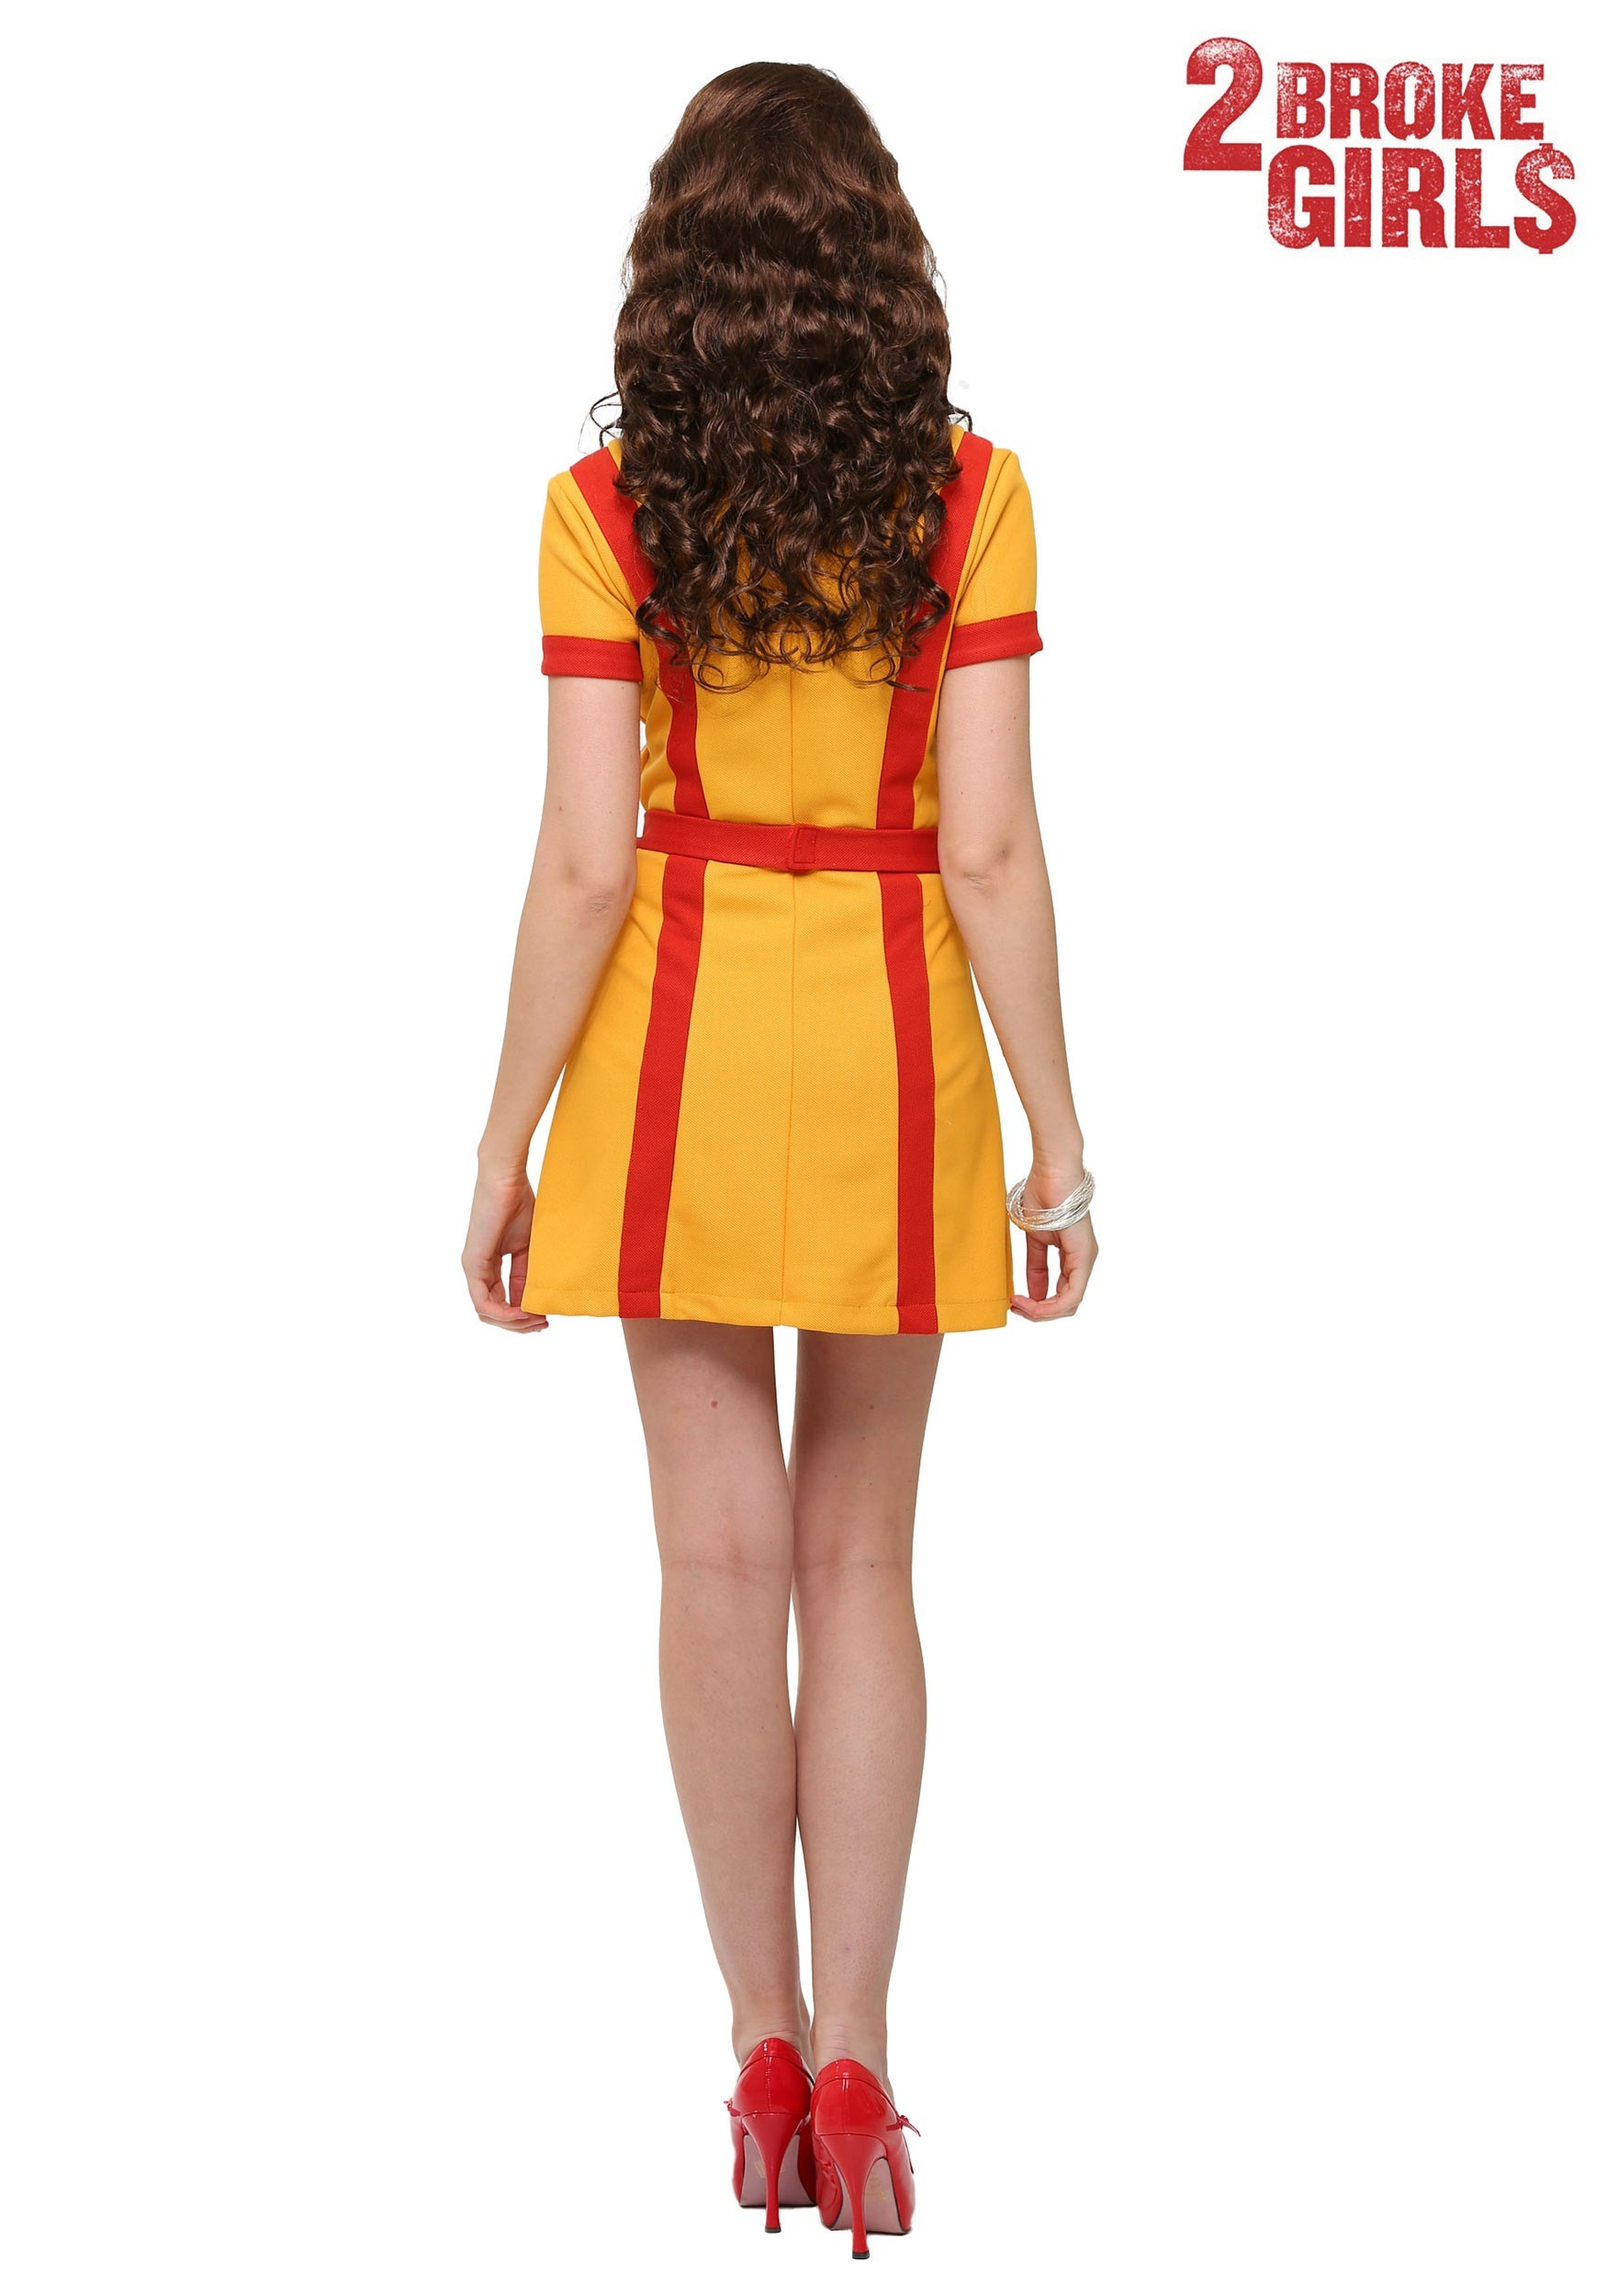 Girls Halloween Costumes. This year's largest selection of girls costumes are here at Halloween Express! We feature the best selection of Halloween costumes for girls .